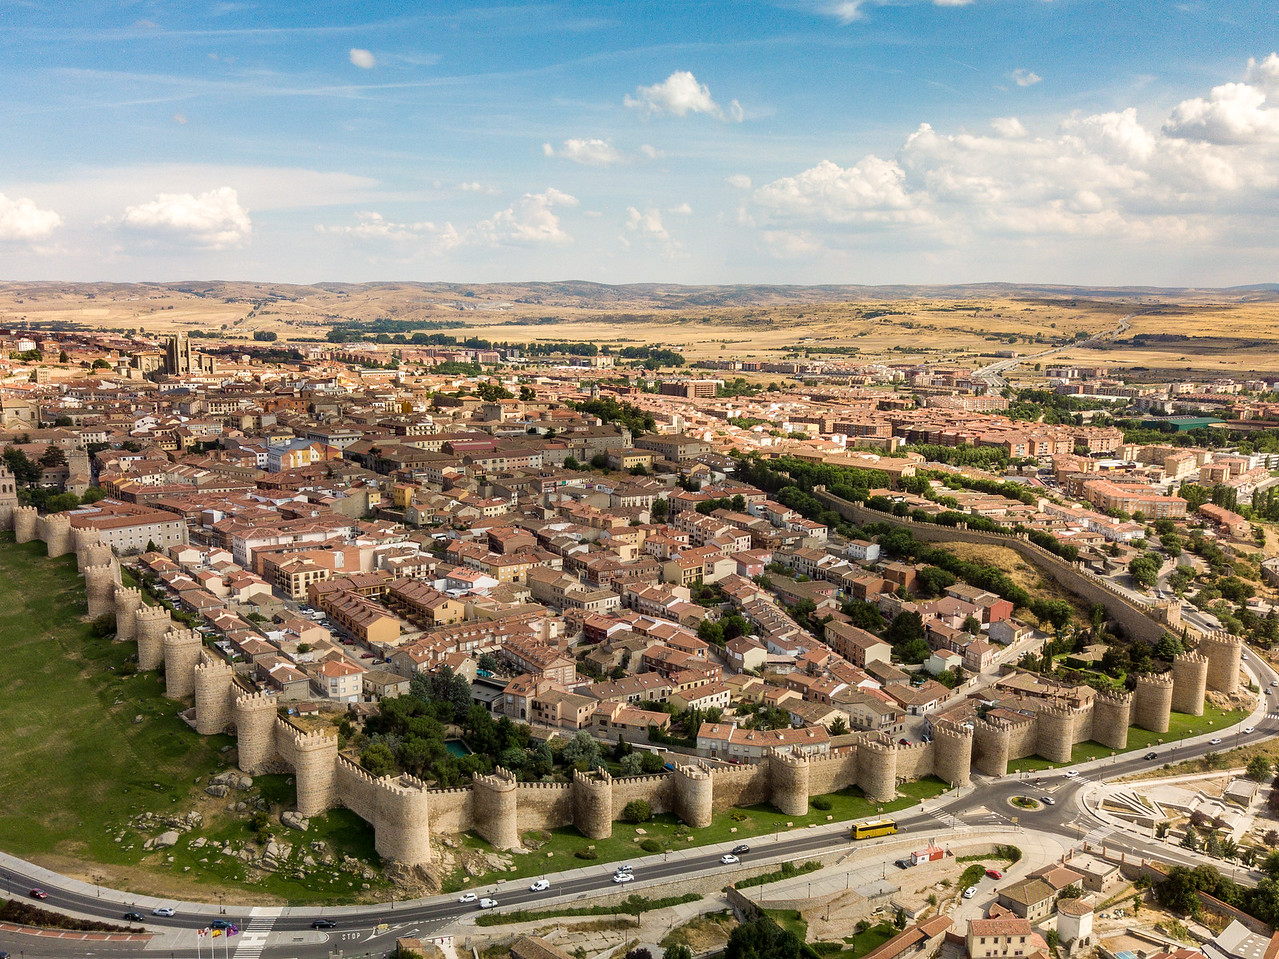 Drone Image of Avila, Spain Castle